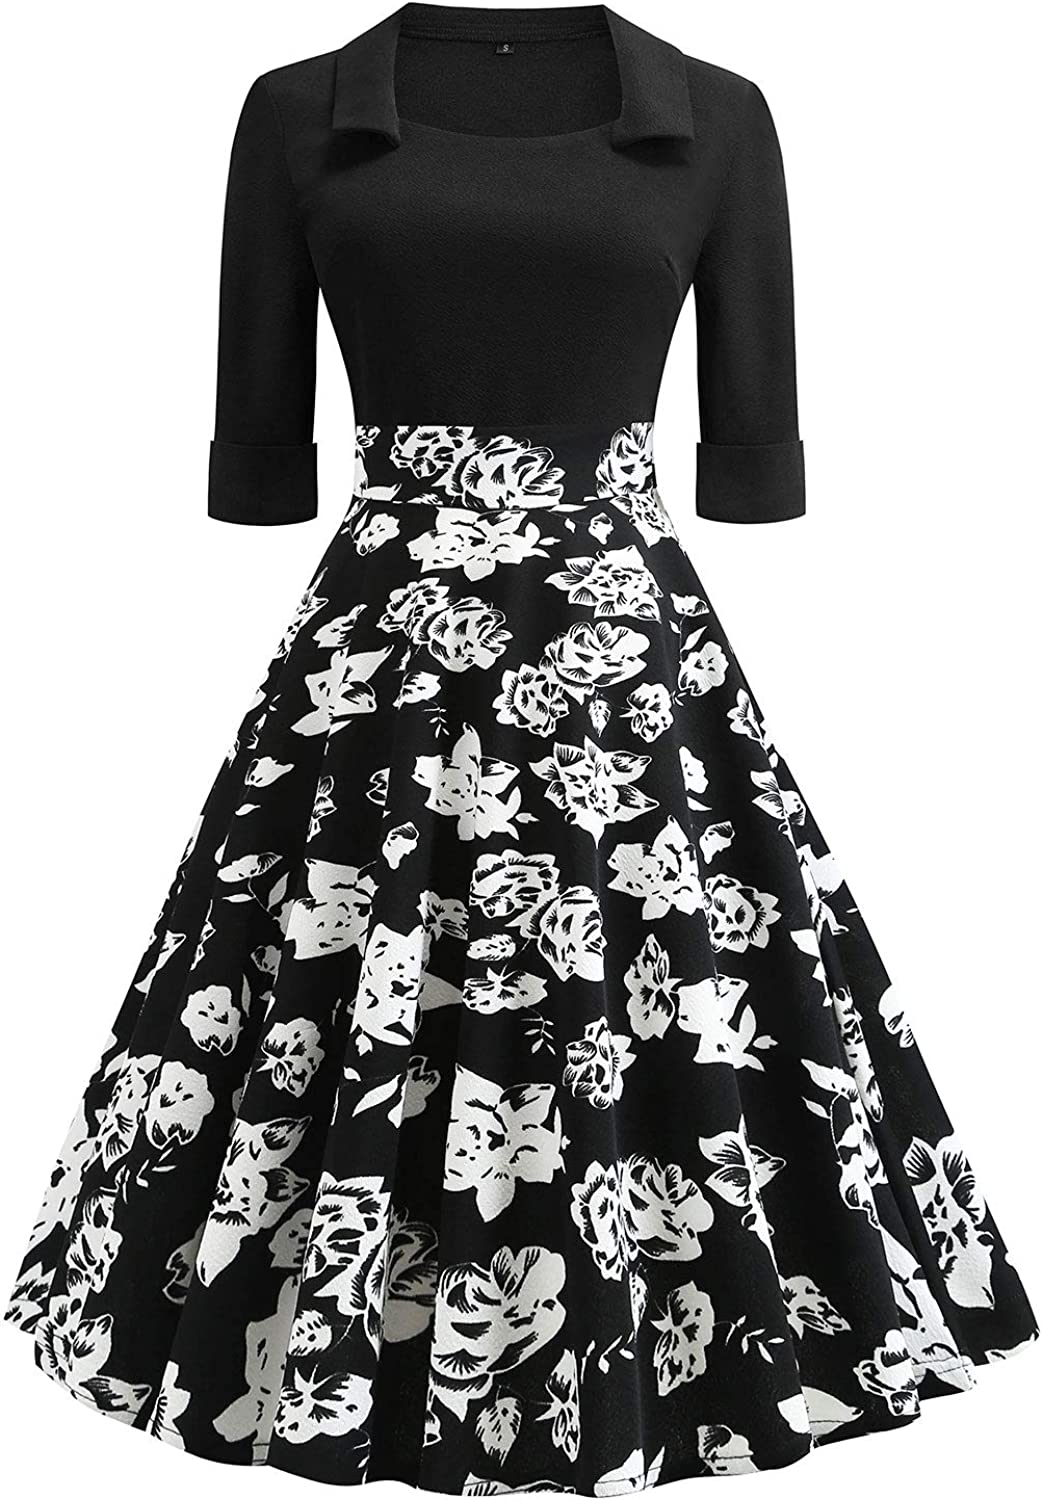 Women's Vintage Patchwork Pockets Half Sleeve Puffy Swing Casual Party Dress 2472